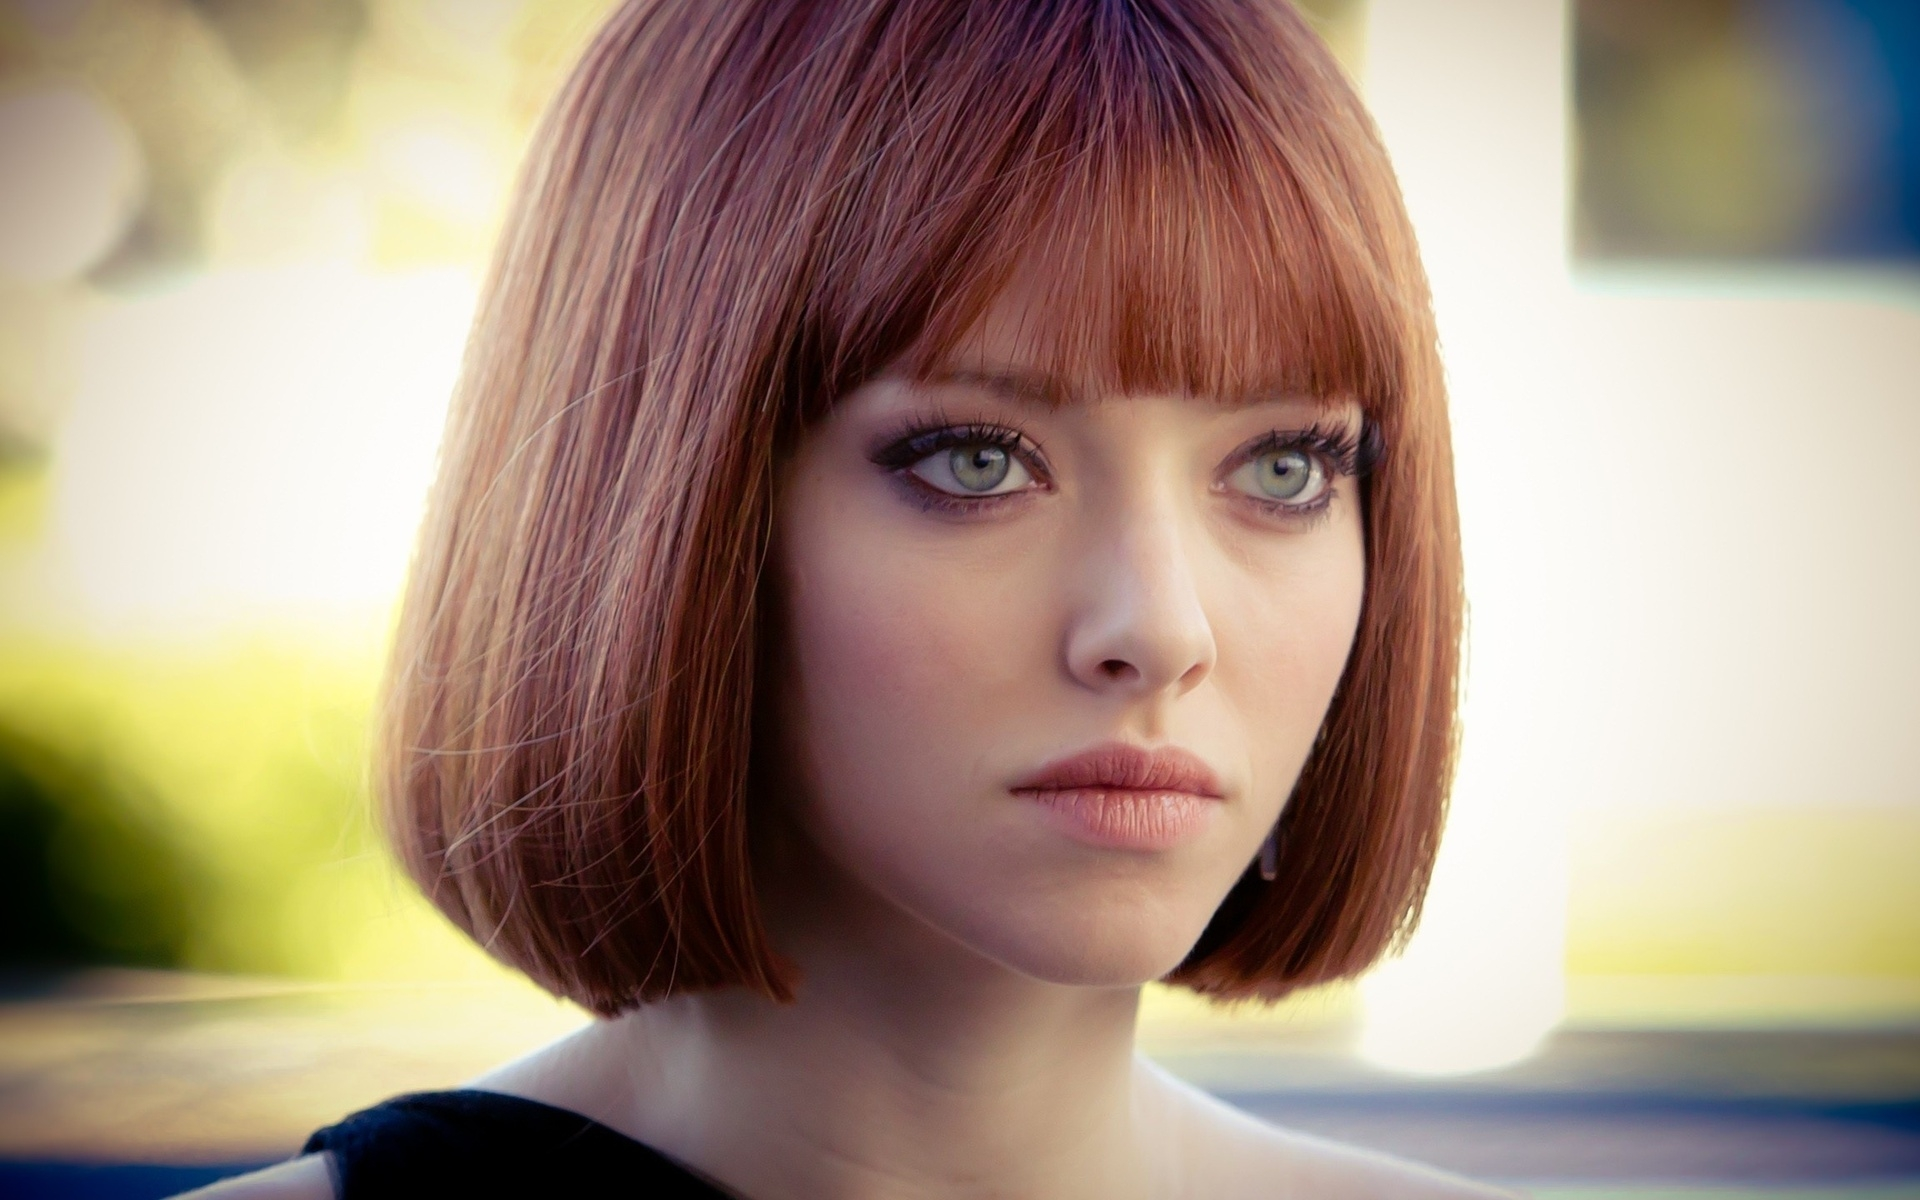 Amanda Seyfried In Time for 1920 x 1200 widescreen resolution